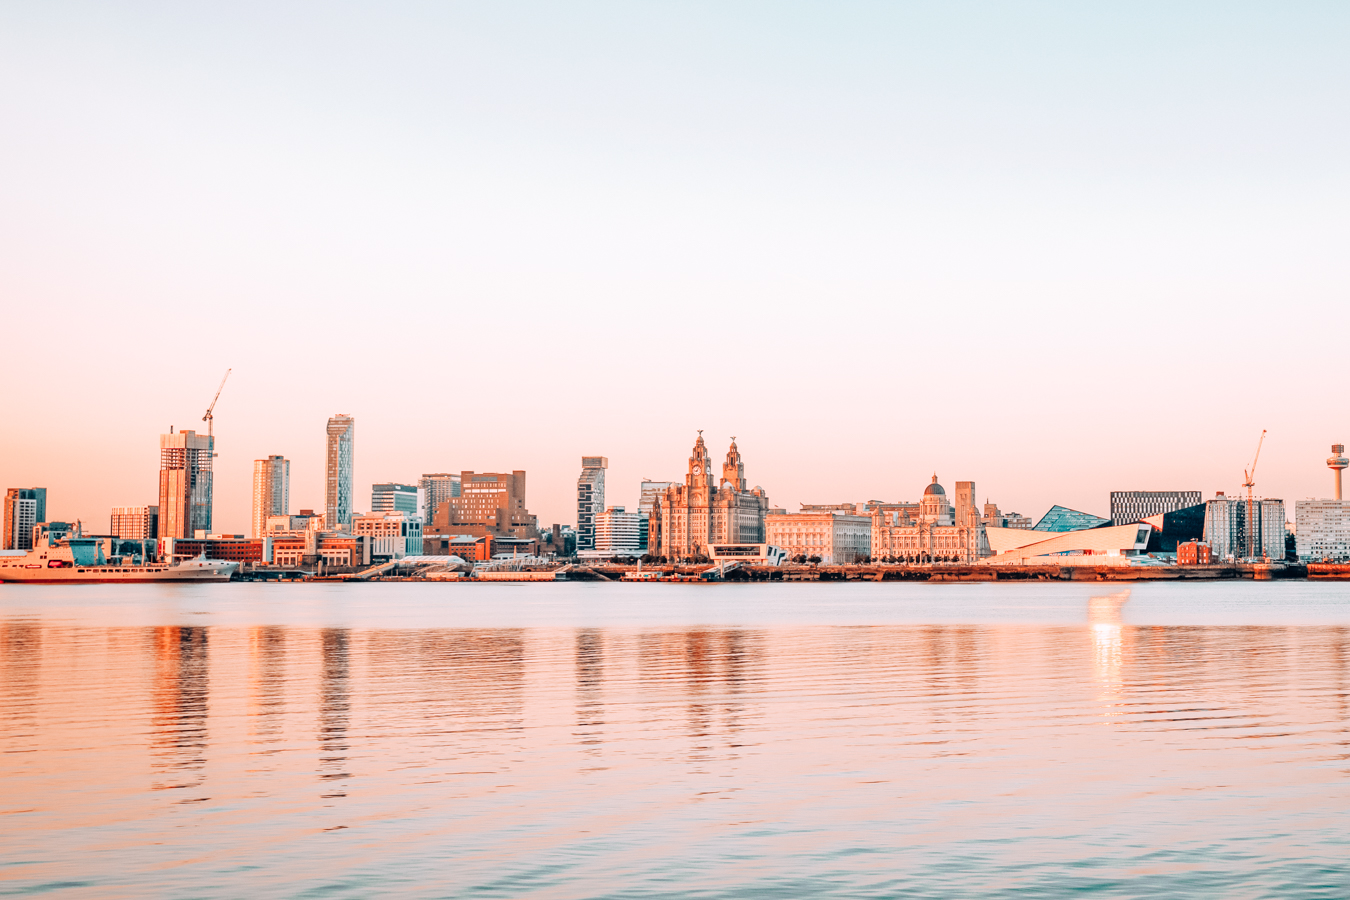 A view of Liverpool